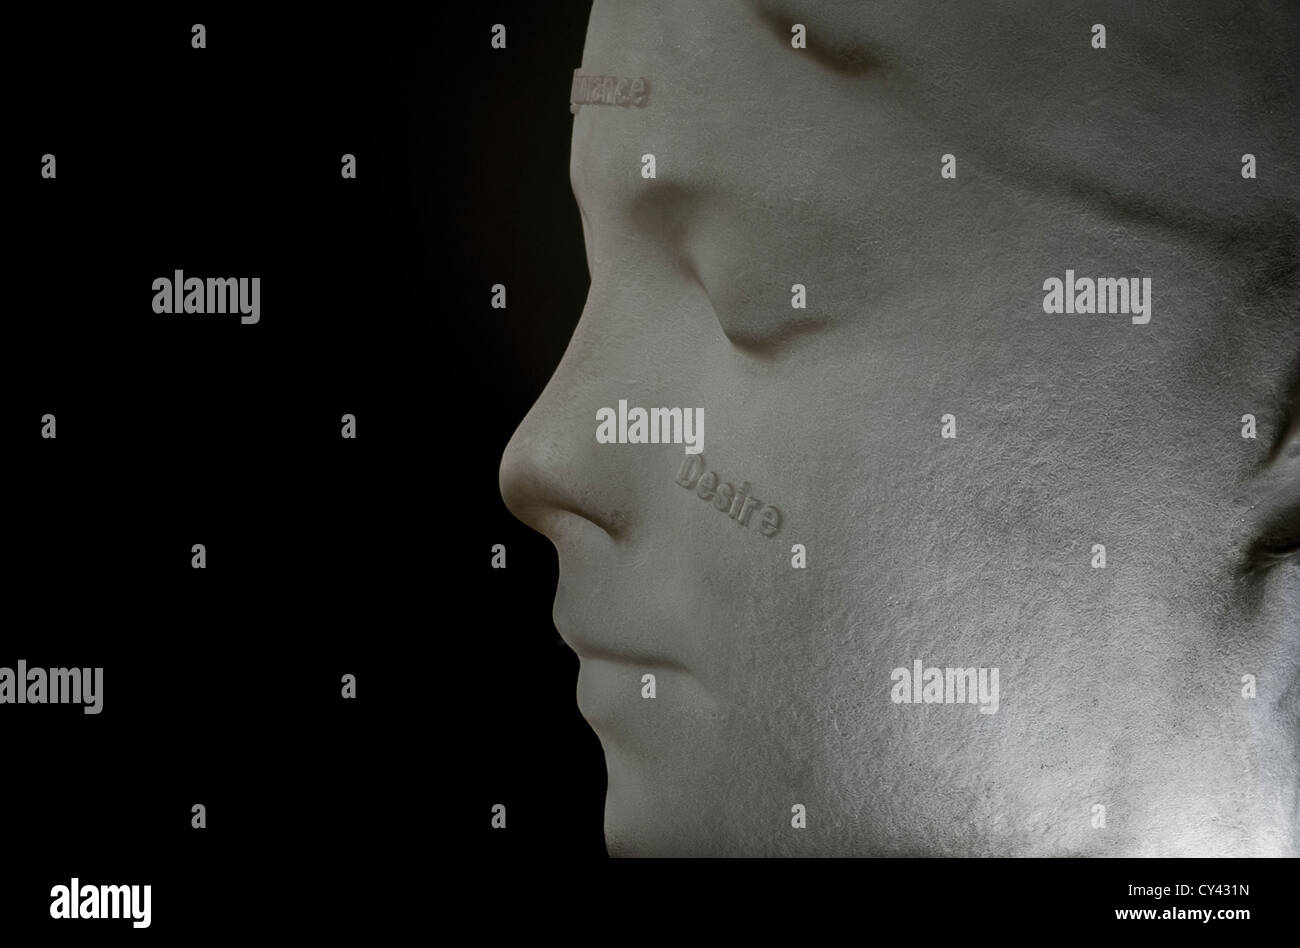 In the Midst of Dreams - from a series of sculptures of alabaster heads by Jaume Plensa, exhibited at Yorkshire Stock Photo